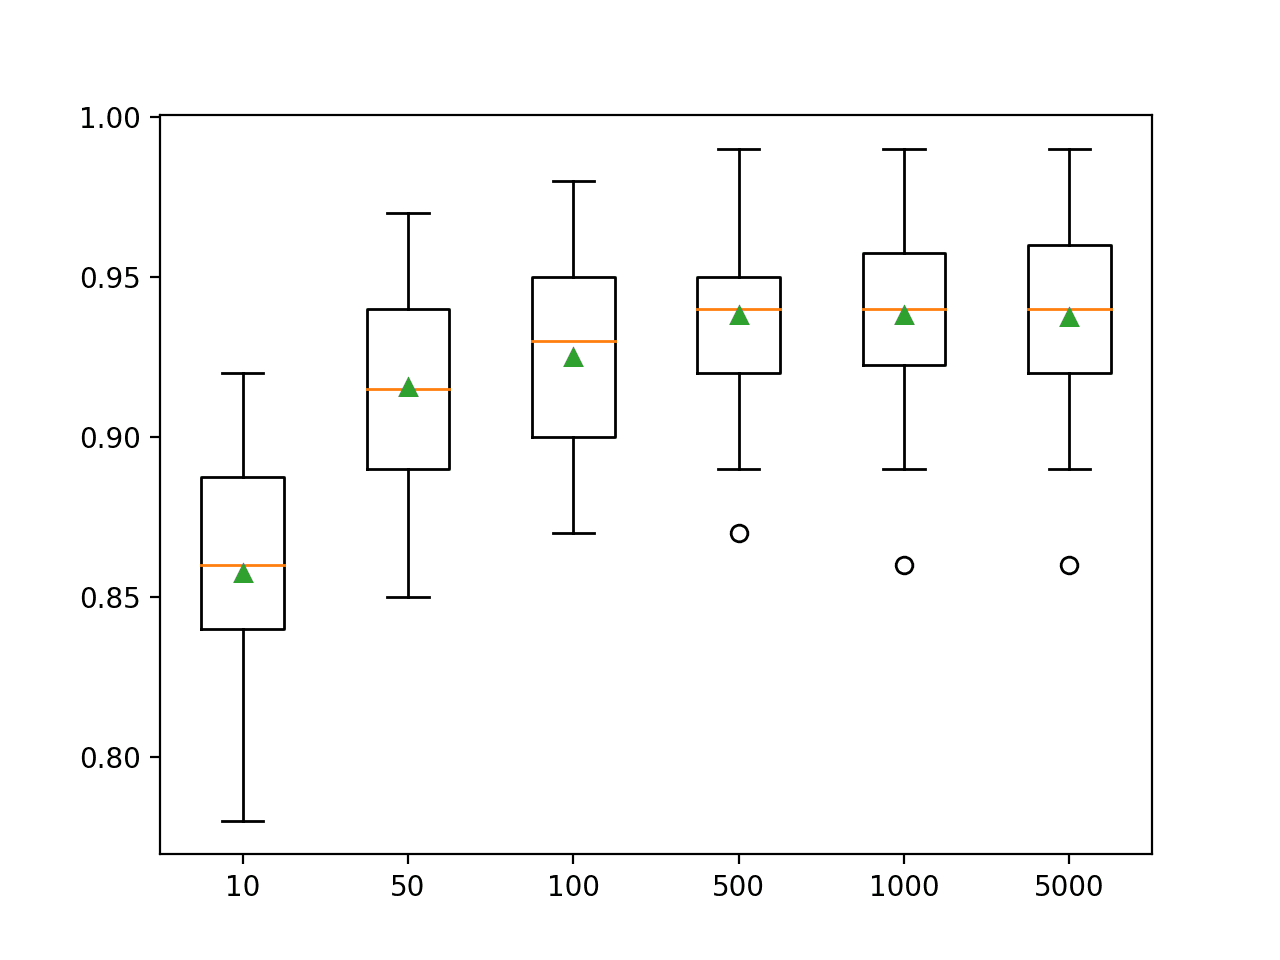 Box Plots of LightGBM Ensemble Size vs. Classification Accuracy